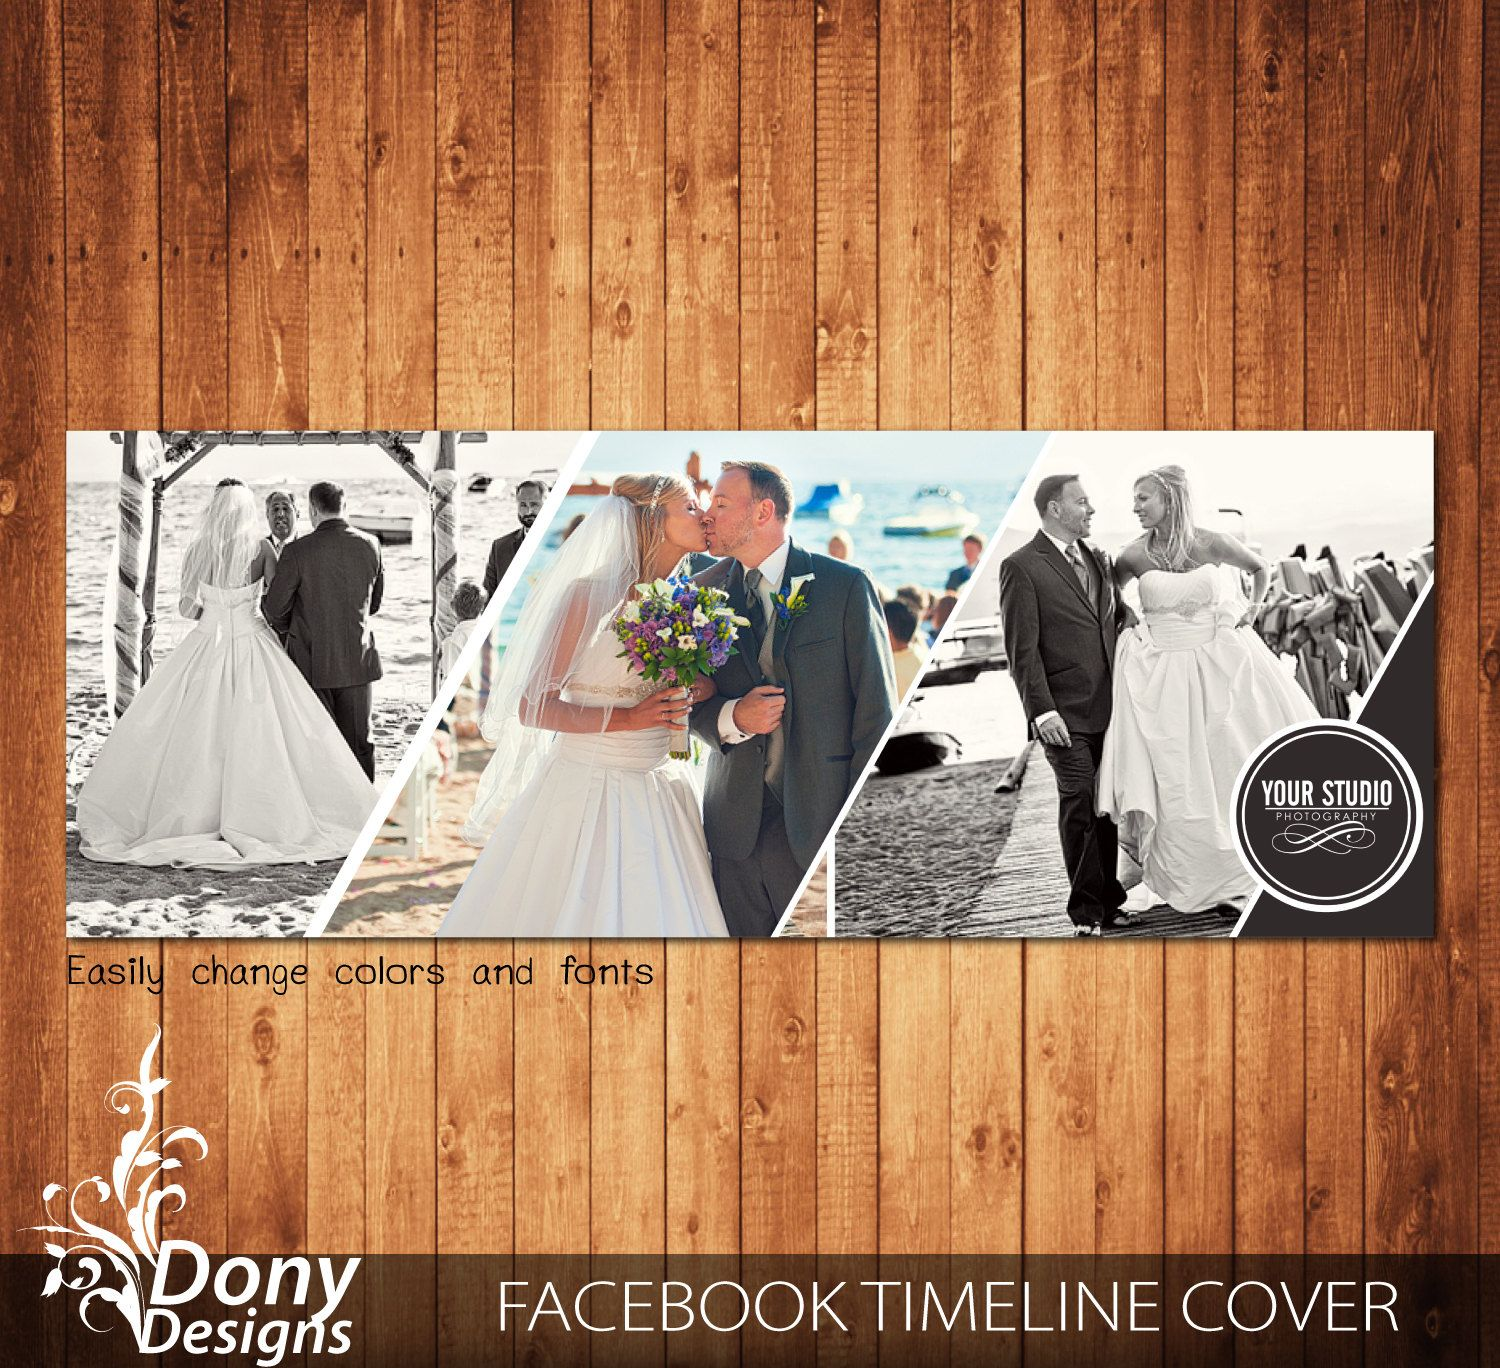 Wedding Facebook Timeline Cover Template Photo Collage Photoshop Template Instant Download Photo Collage Photoshop Facebook Timeline Covers Timeline Covers